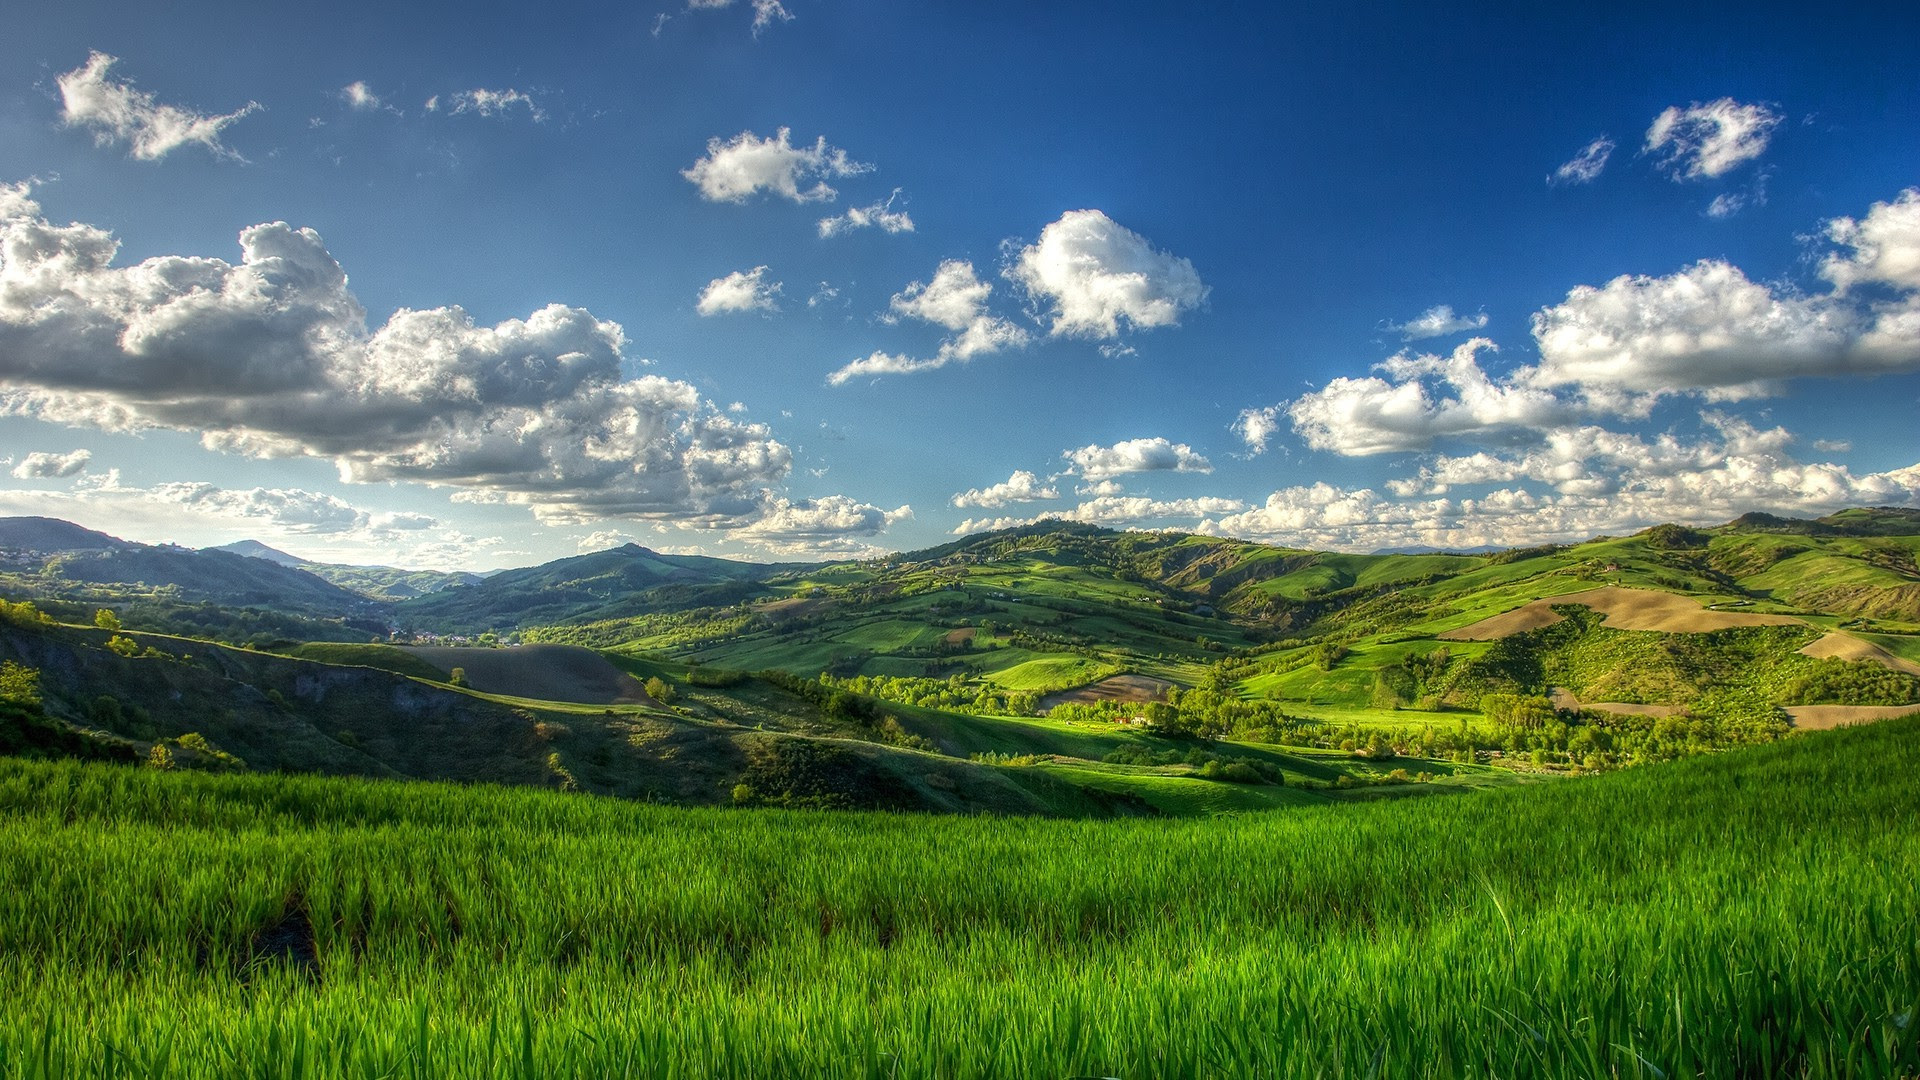 nature, Landscape, Trees, Clouds, Hill, Field, Grass ...